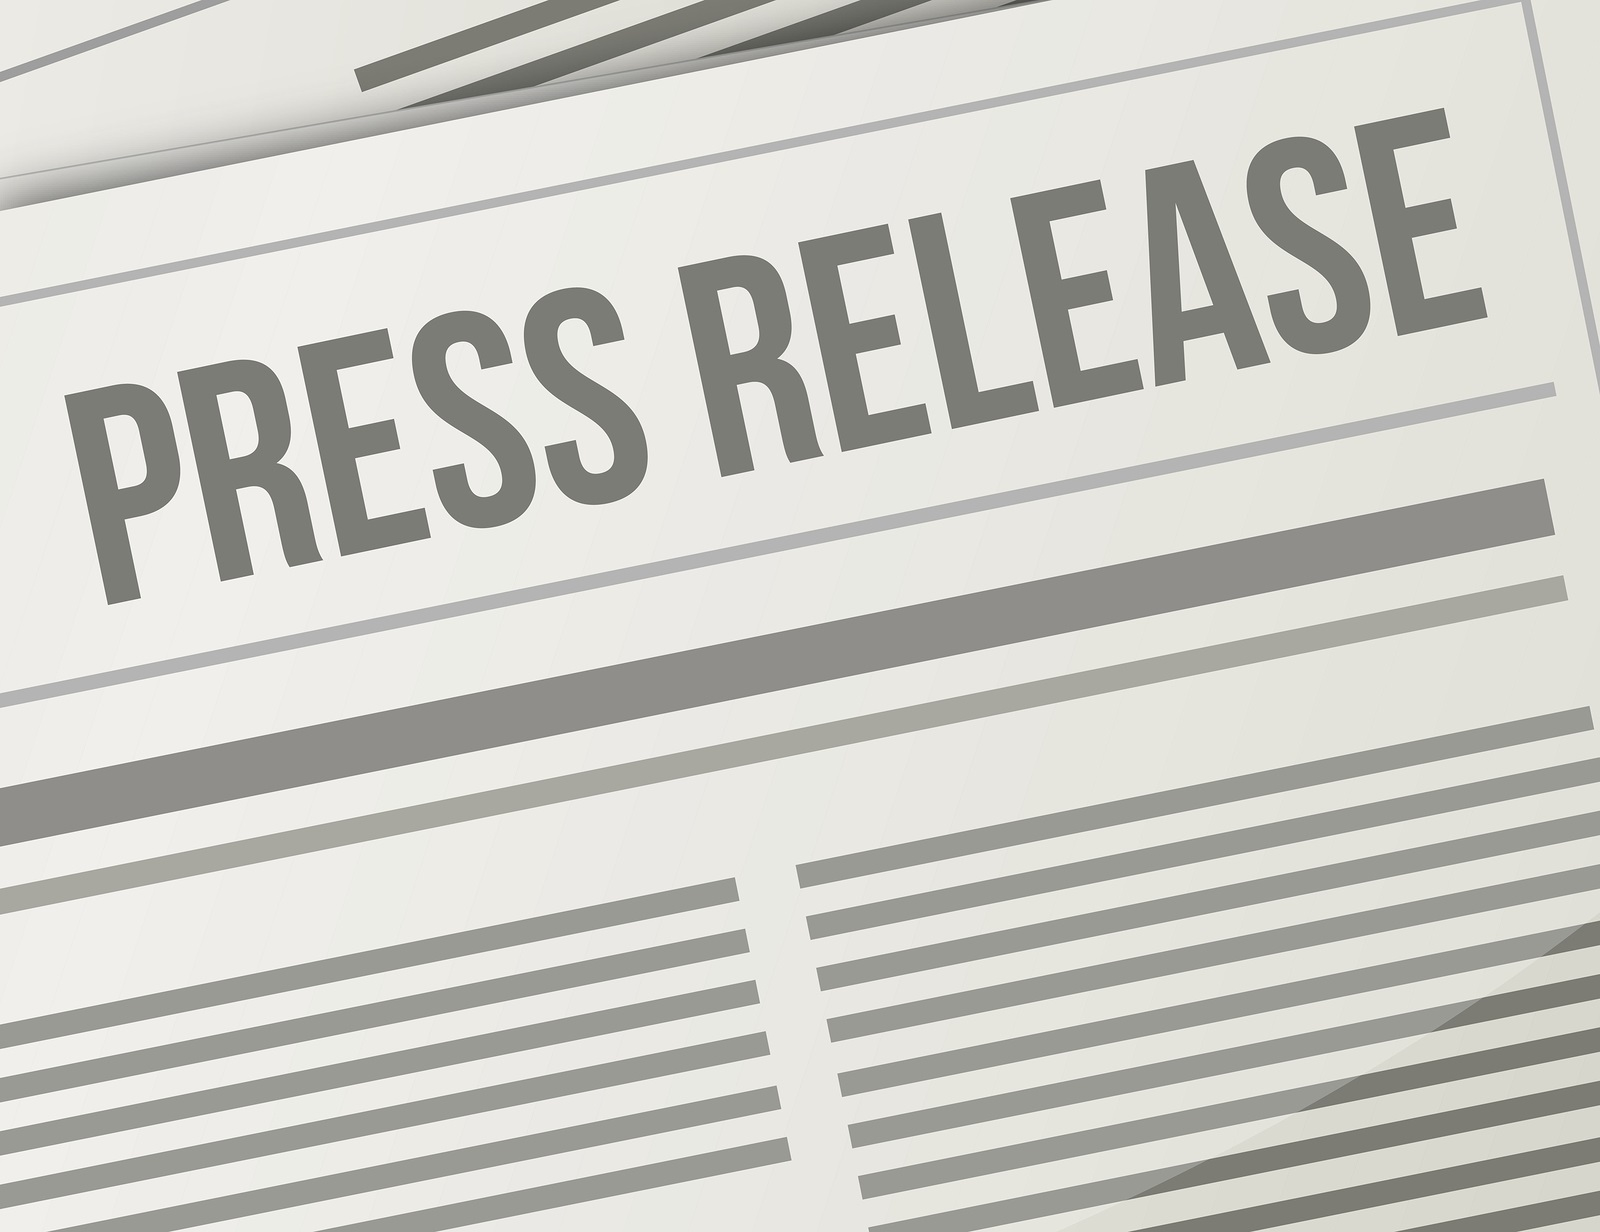 publish 3 press releases for your business